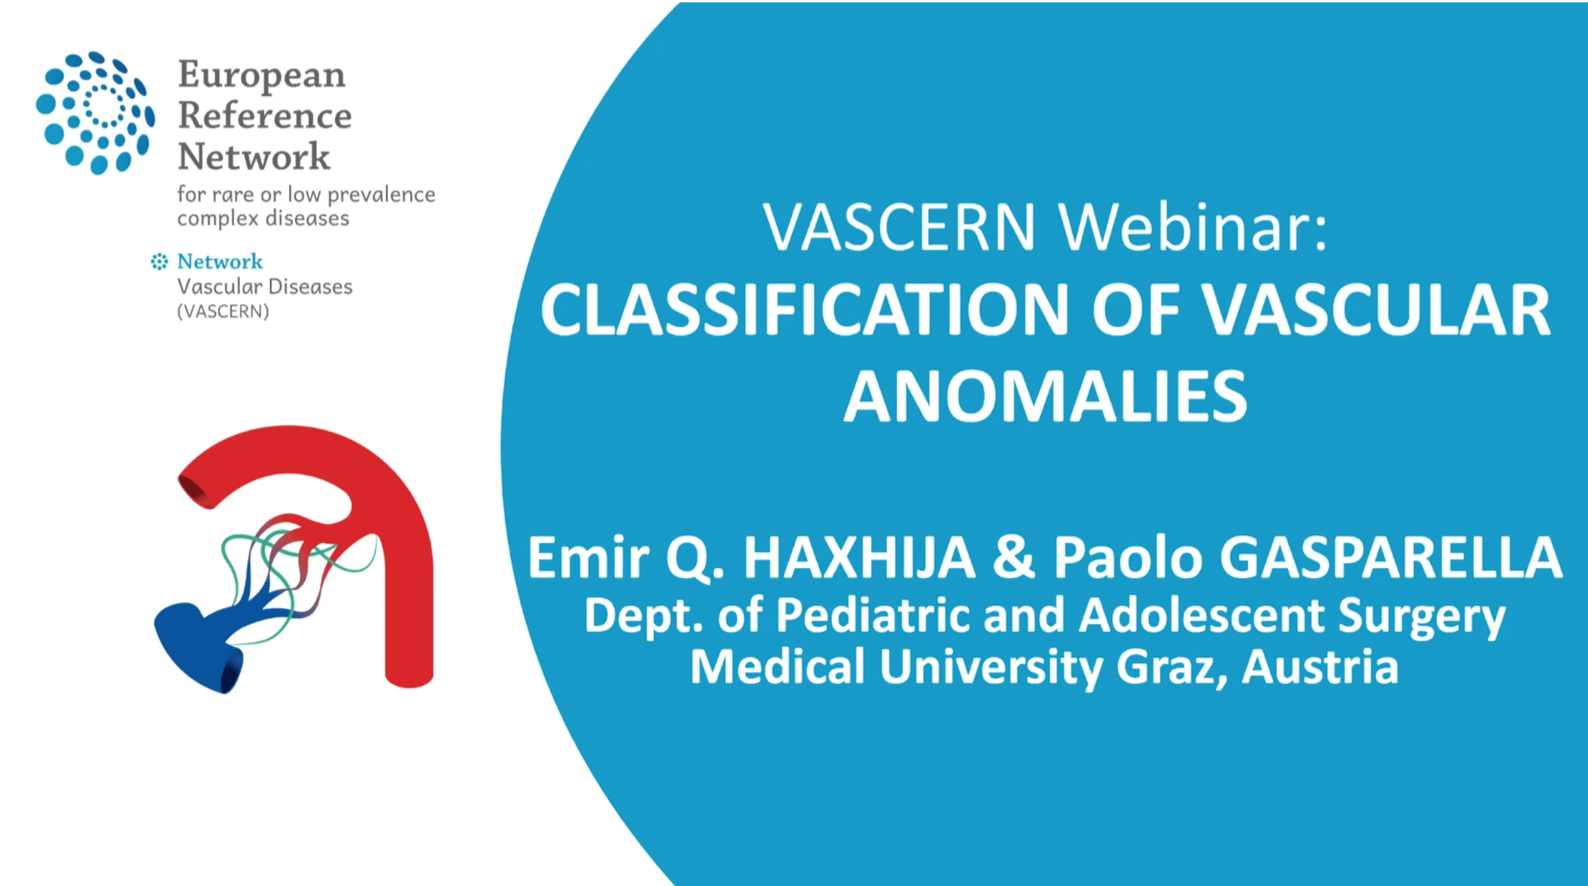 Recording of the VASCERN webinar: Classification of vascular anomalies now available!